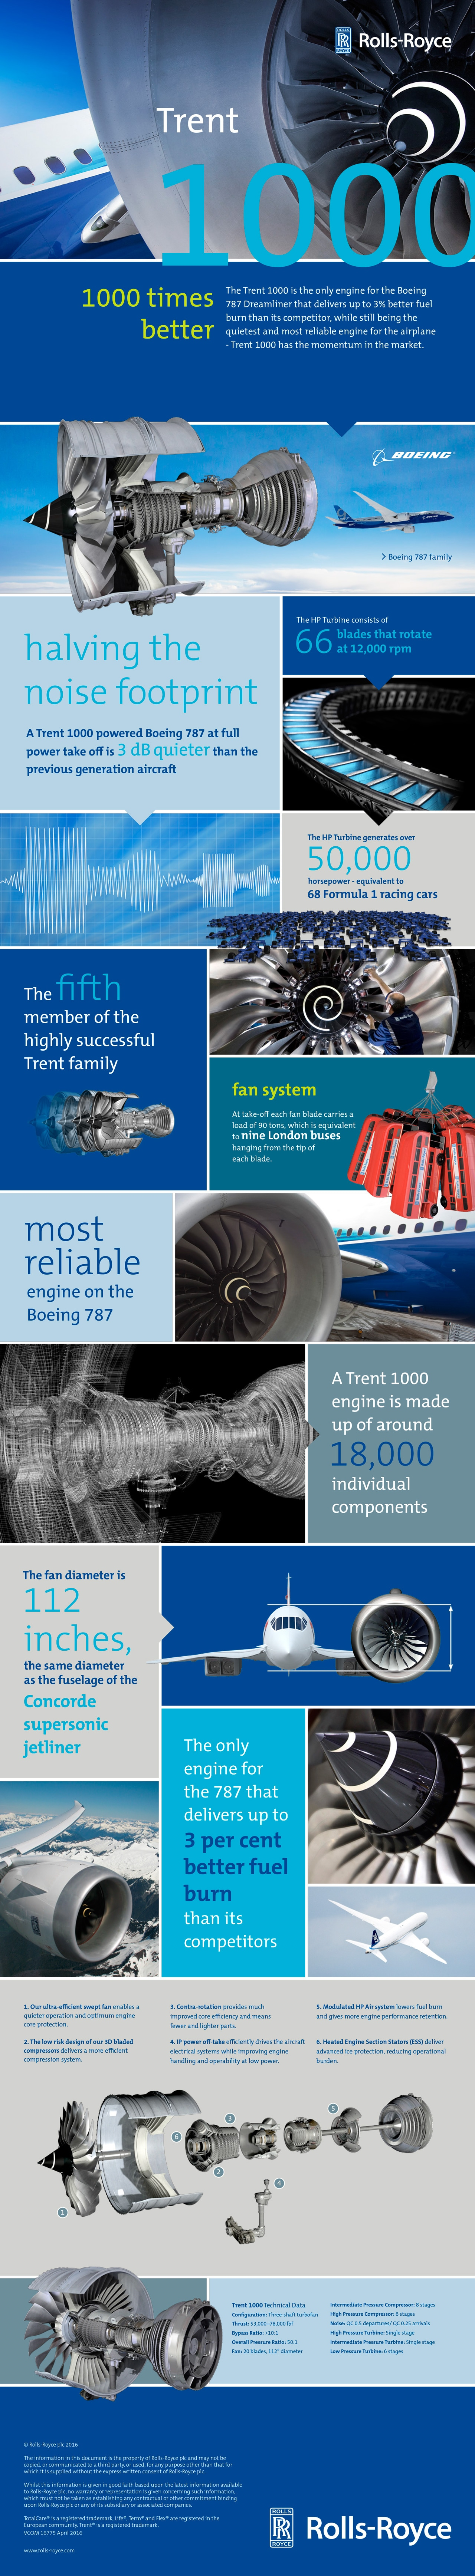 Amazon Kindle Oasis 2017 Review In Pictures further Trent 1000 Infographic besides News further Audi Tt Rs And R8 Get New Performance Parts Pictures 4 besides Index php. on main